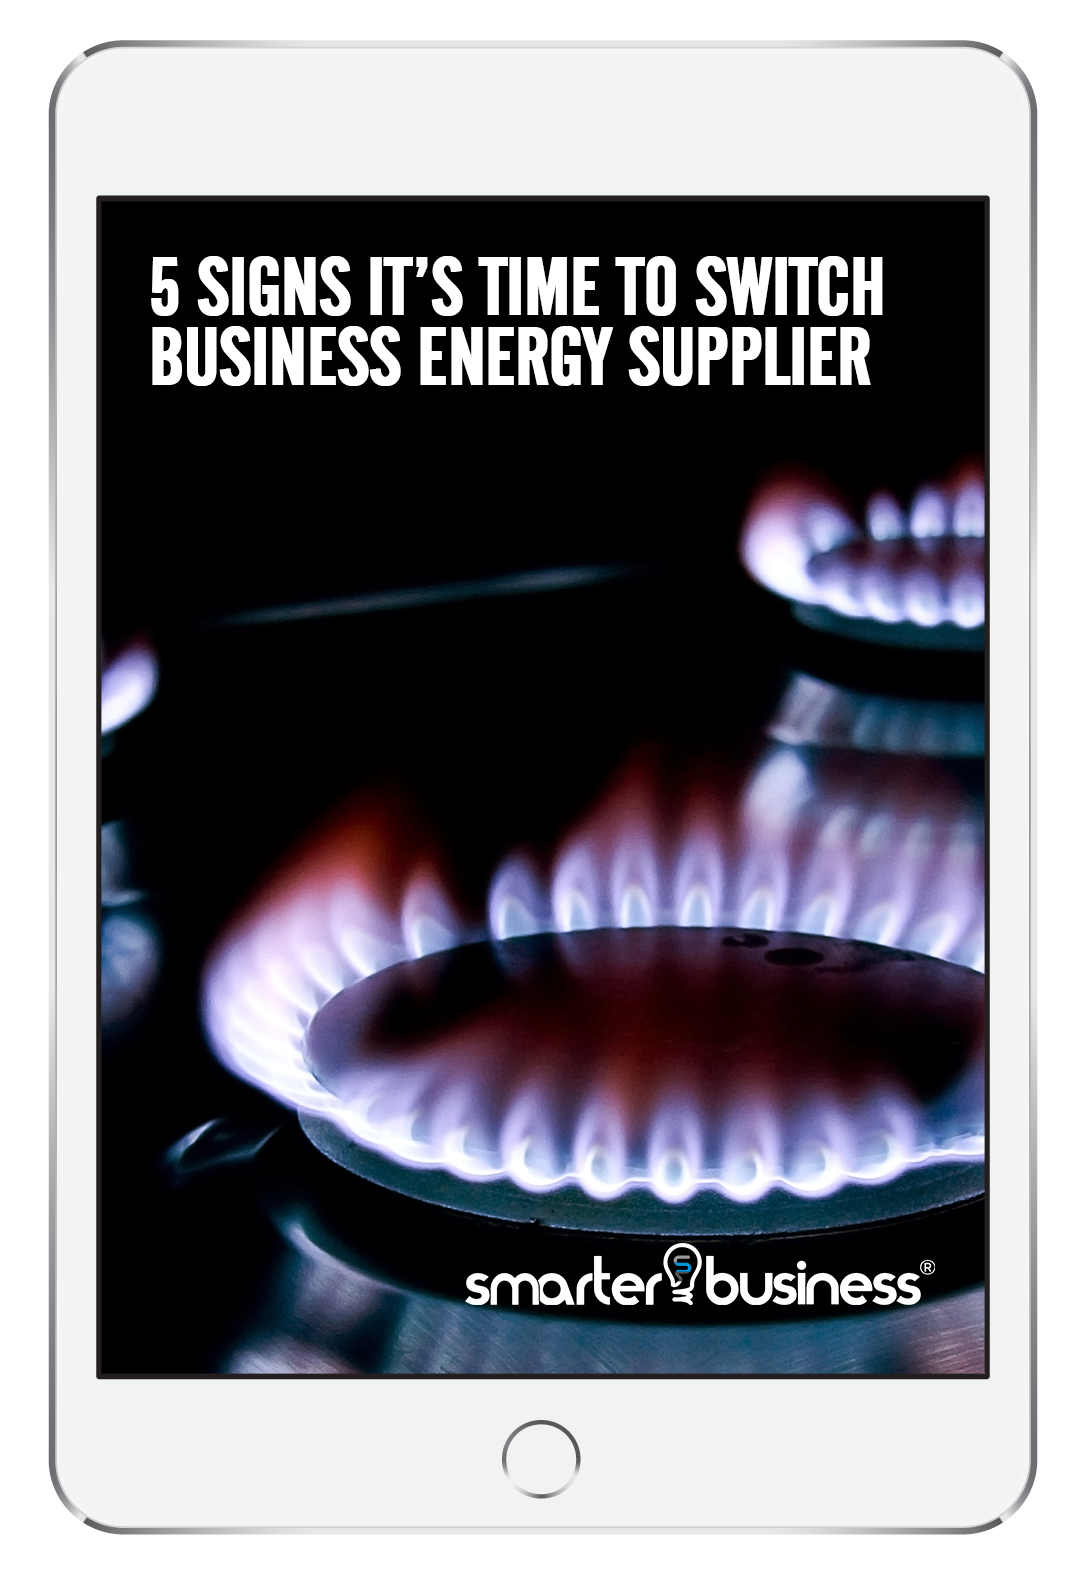 5 SIGNS ITS TIME TO SWITCH BUSINESS ENERGY SUPPLIER